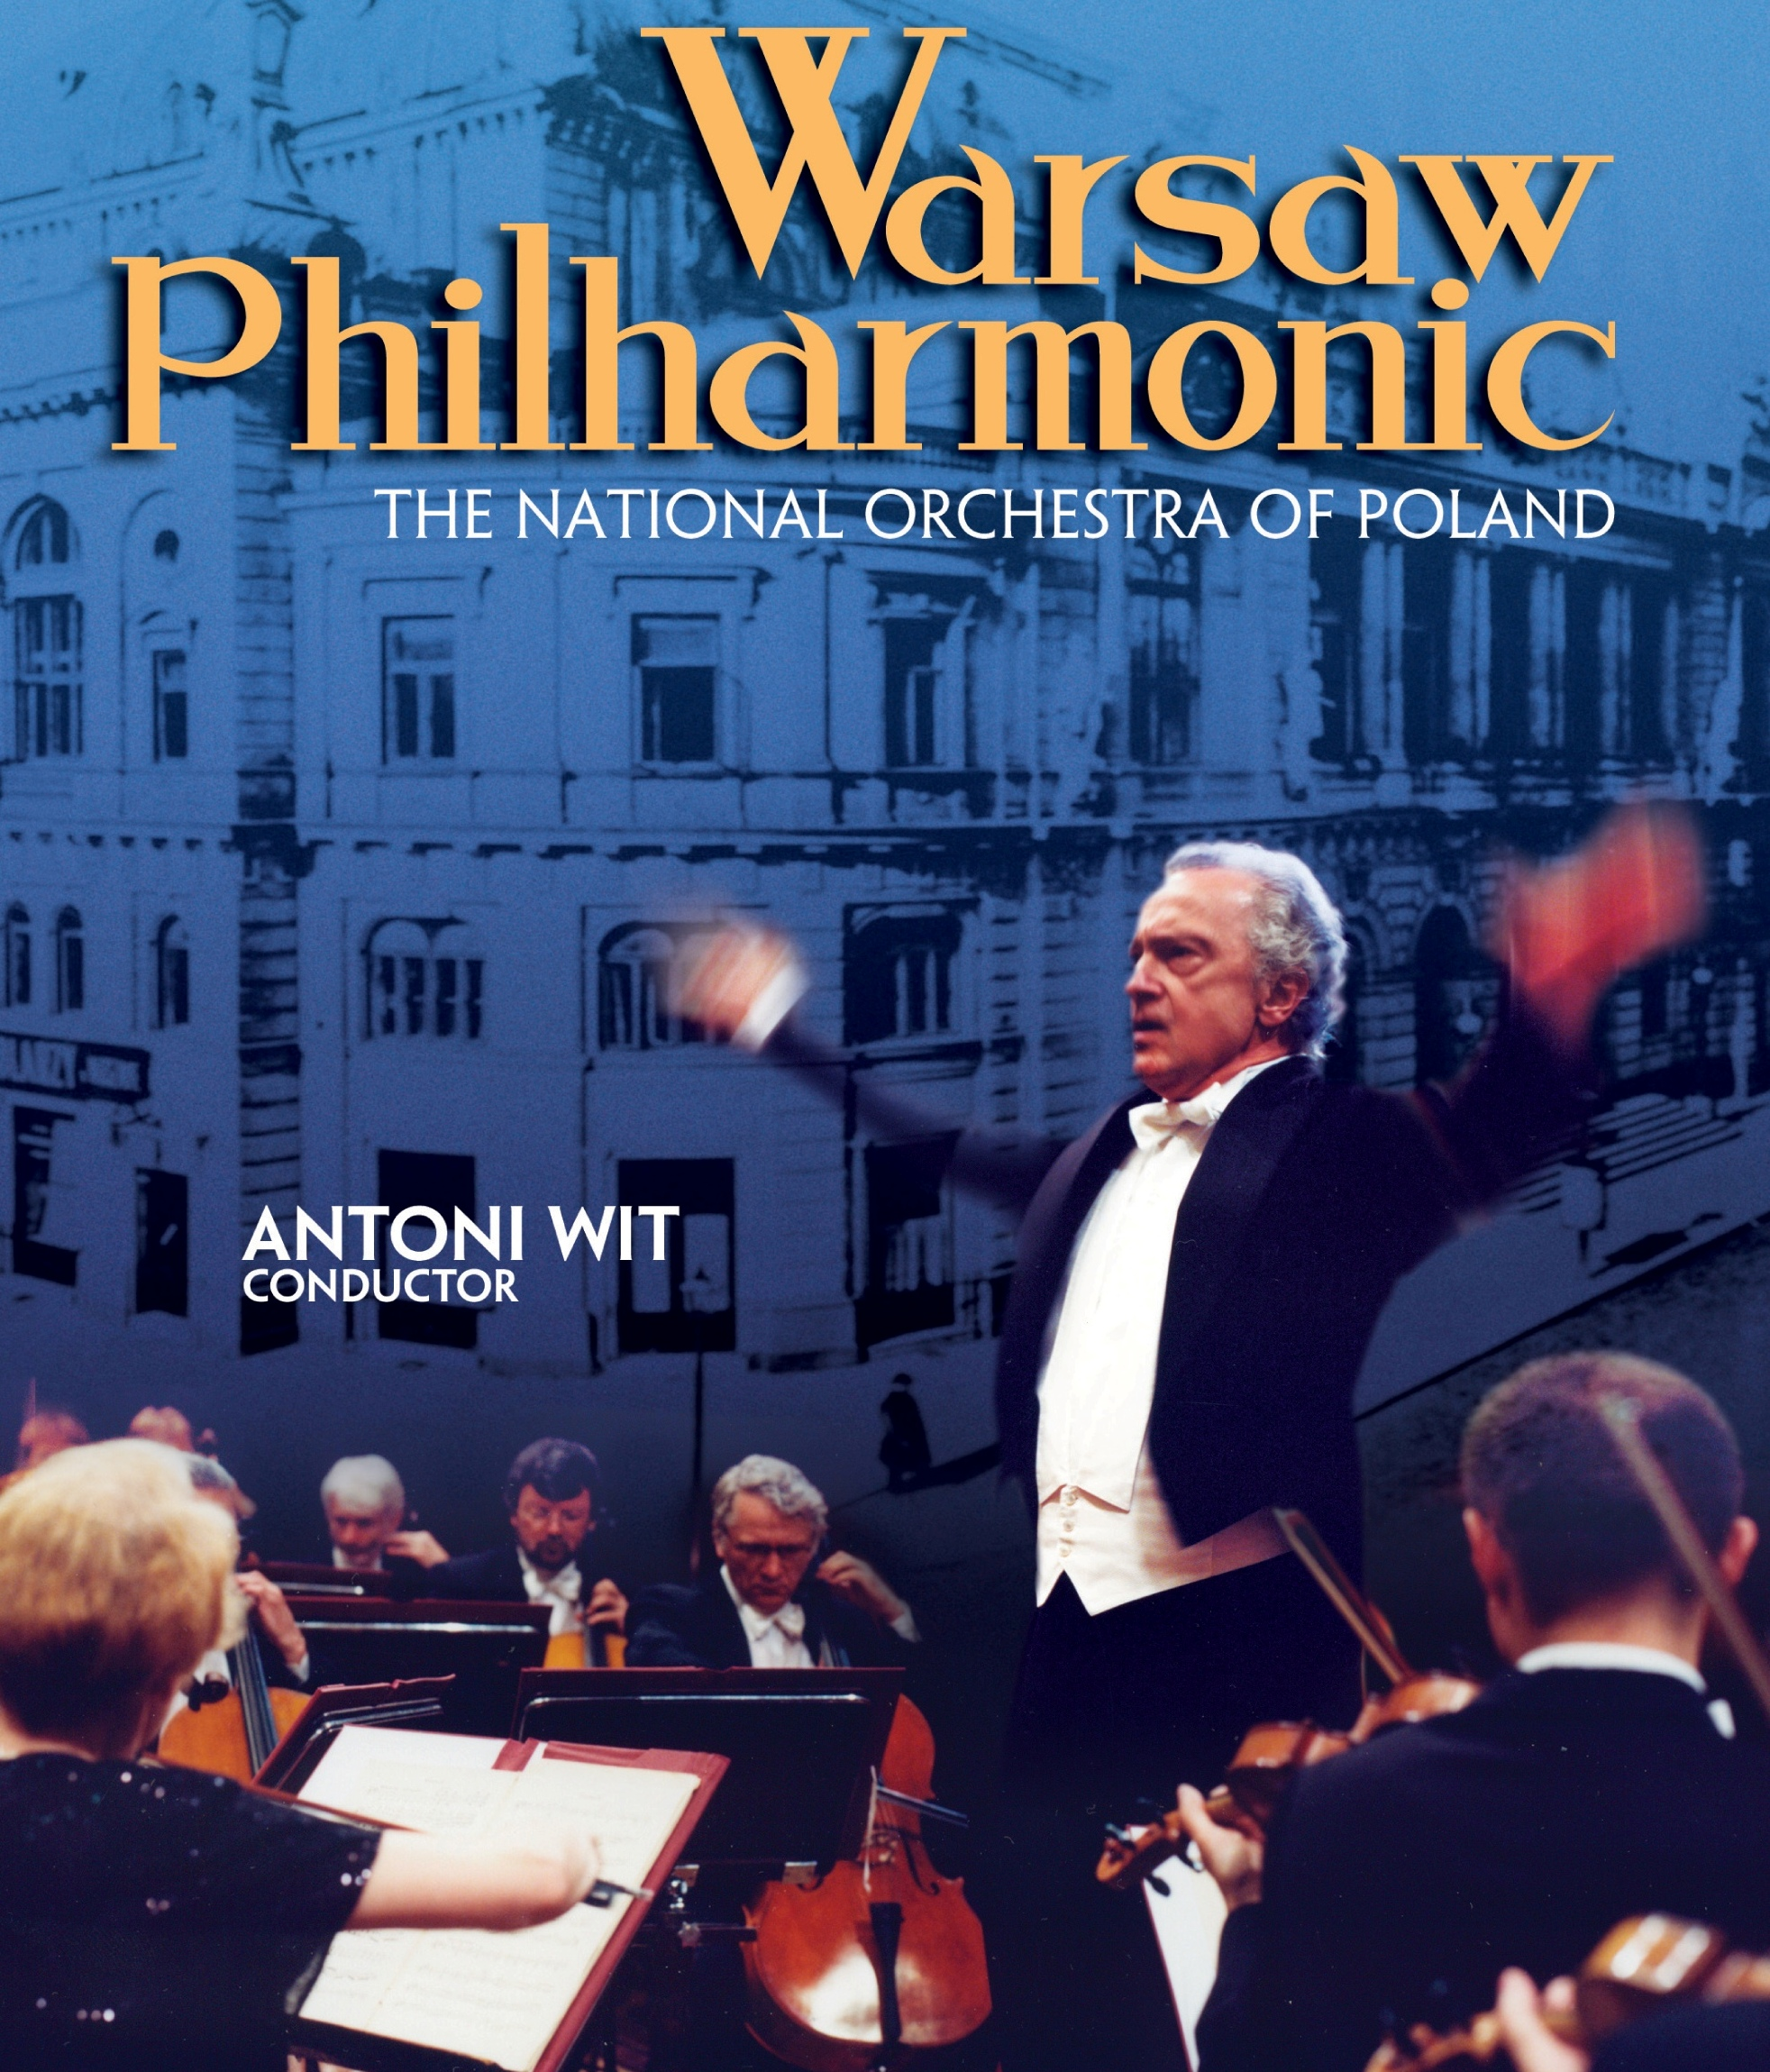 Warsaw Philharmonic Orchestra, Antoni Wit, Director